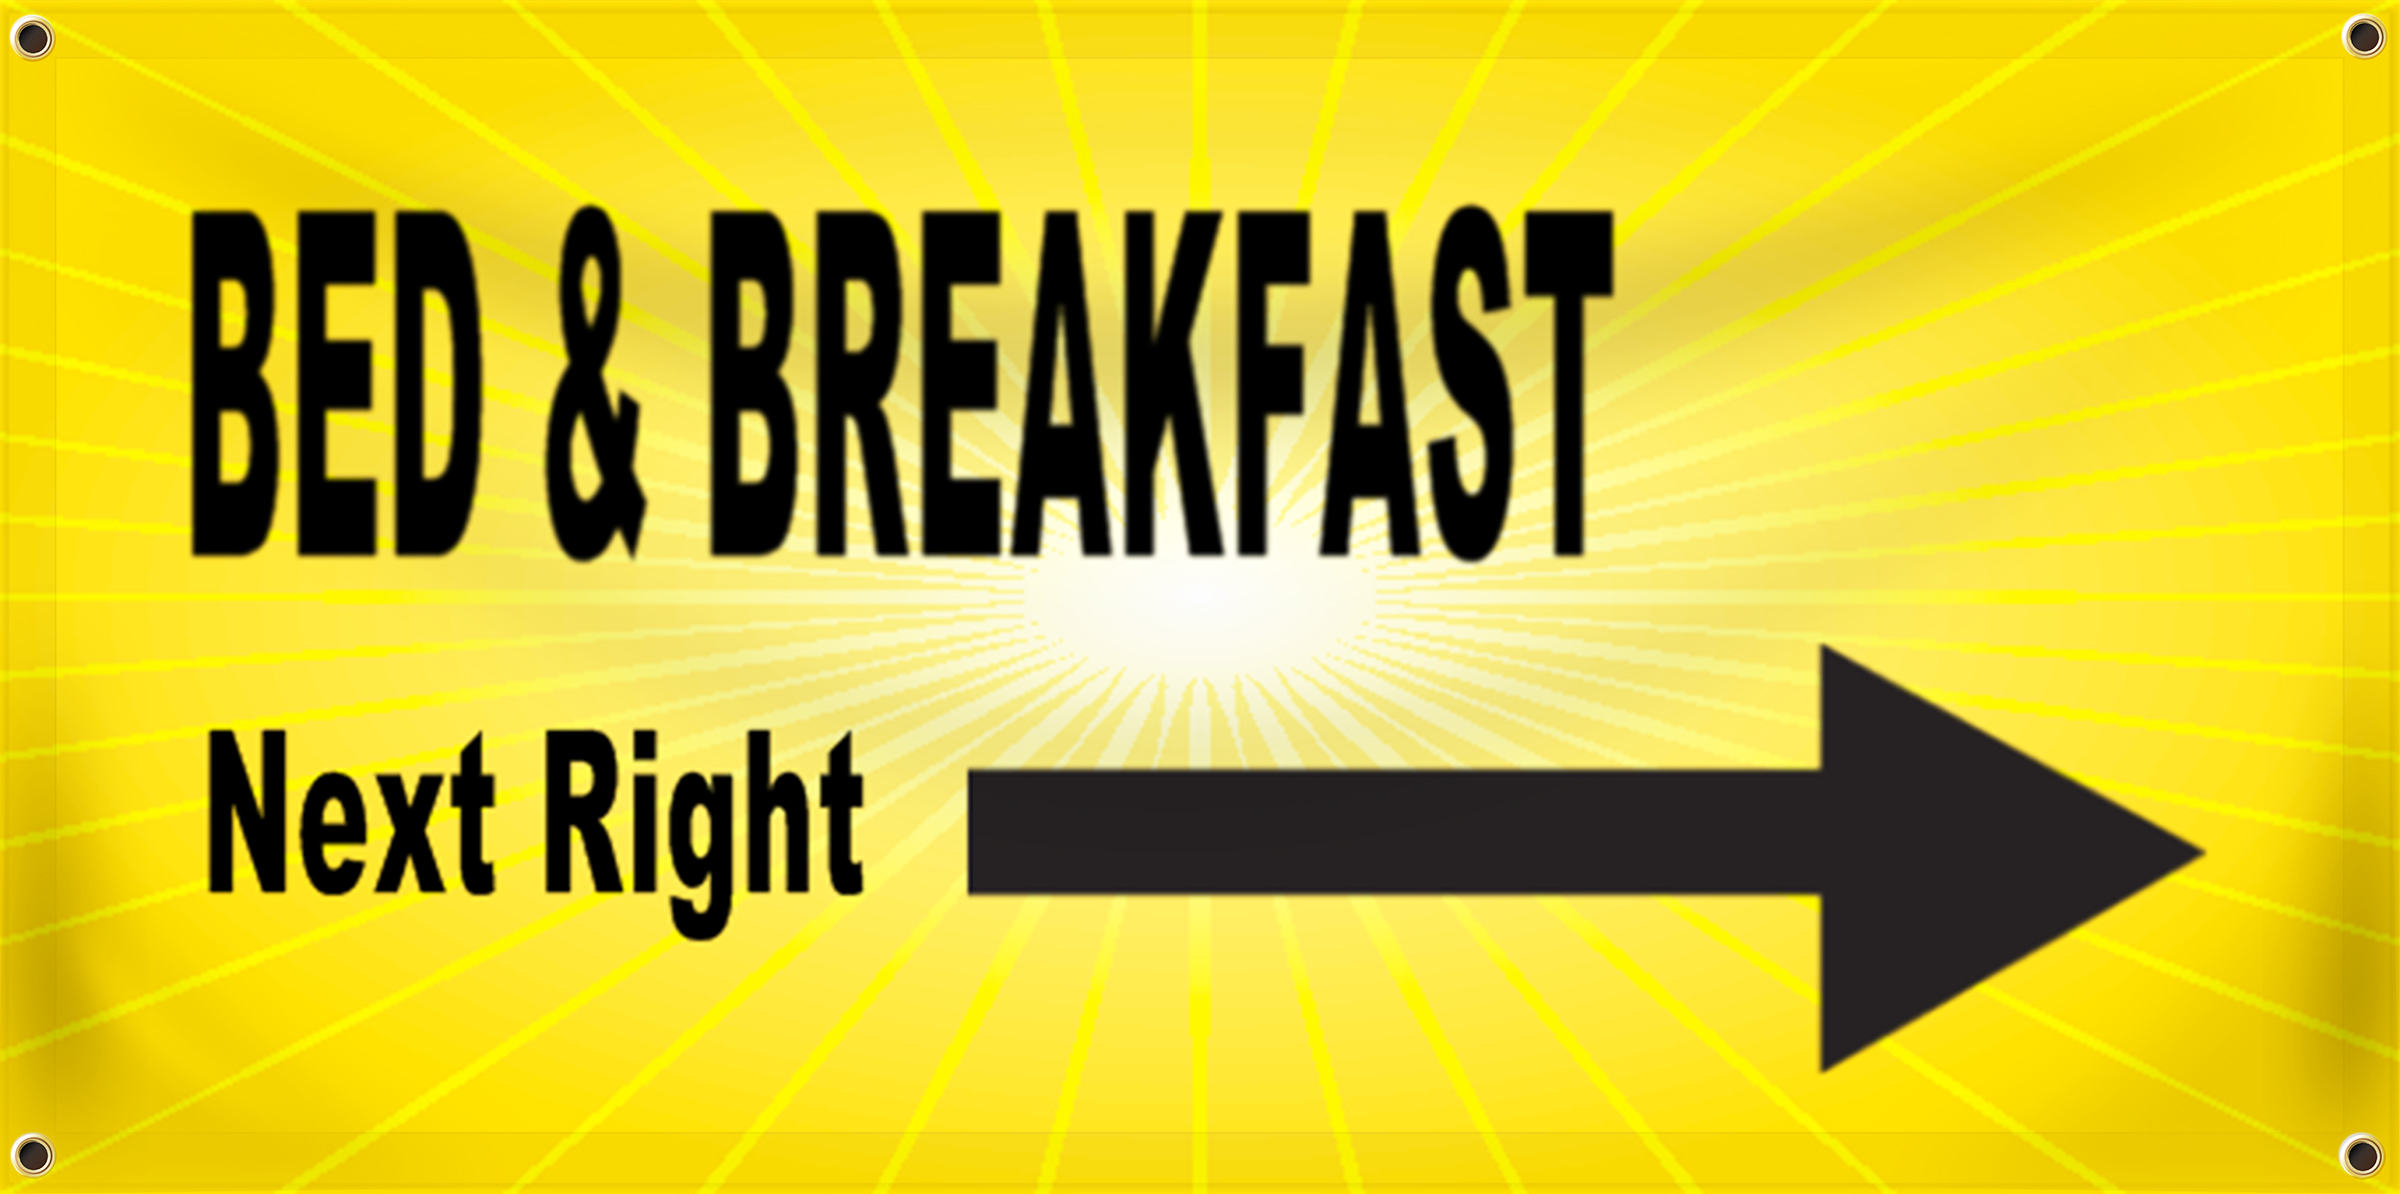 Bed & Breakfast Banner Idea | LawnSigns.com